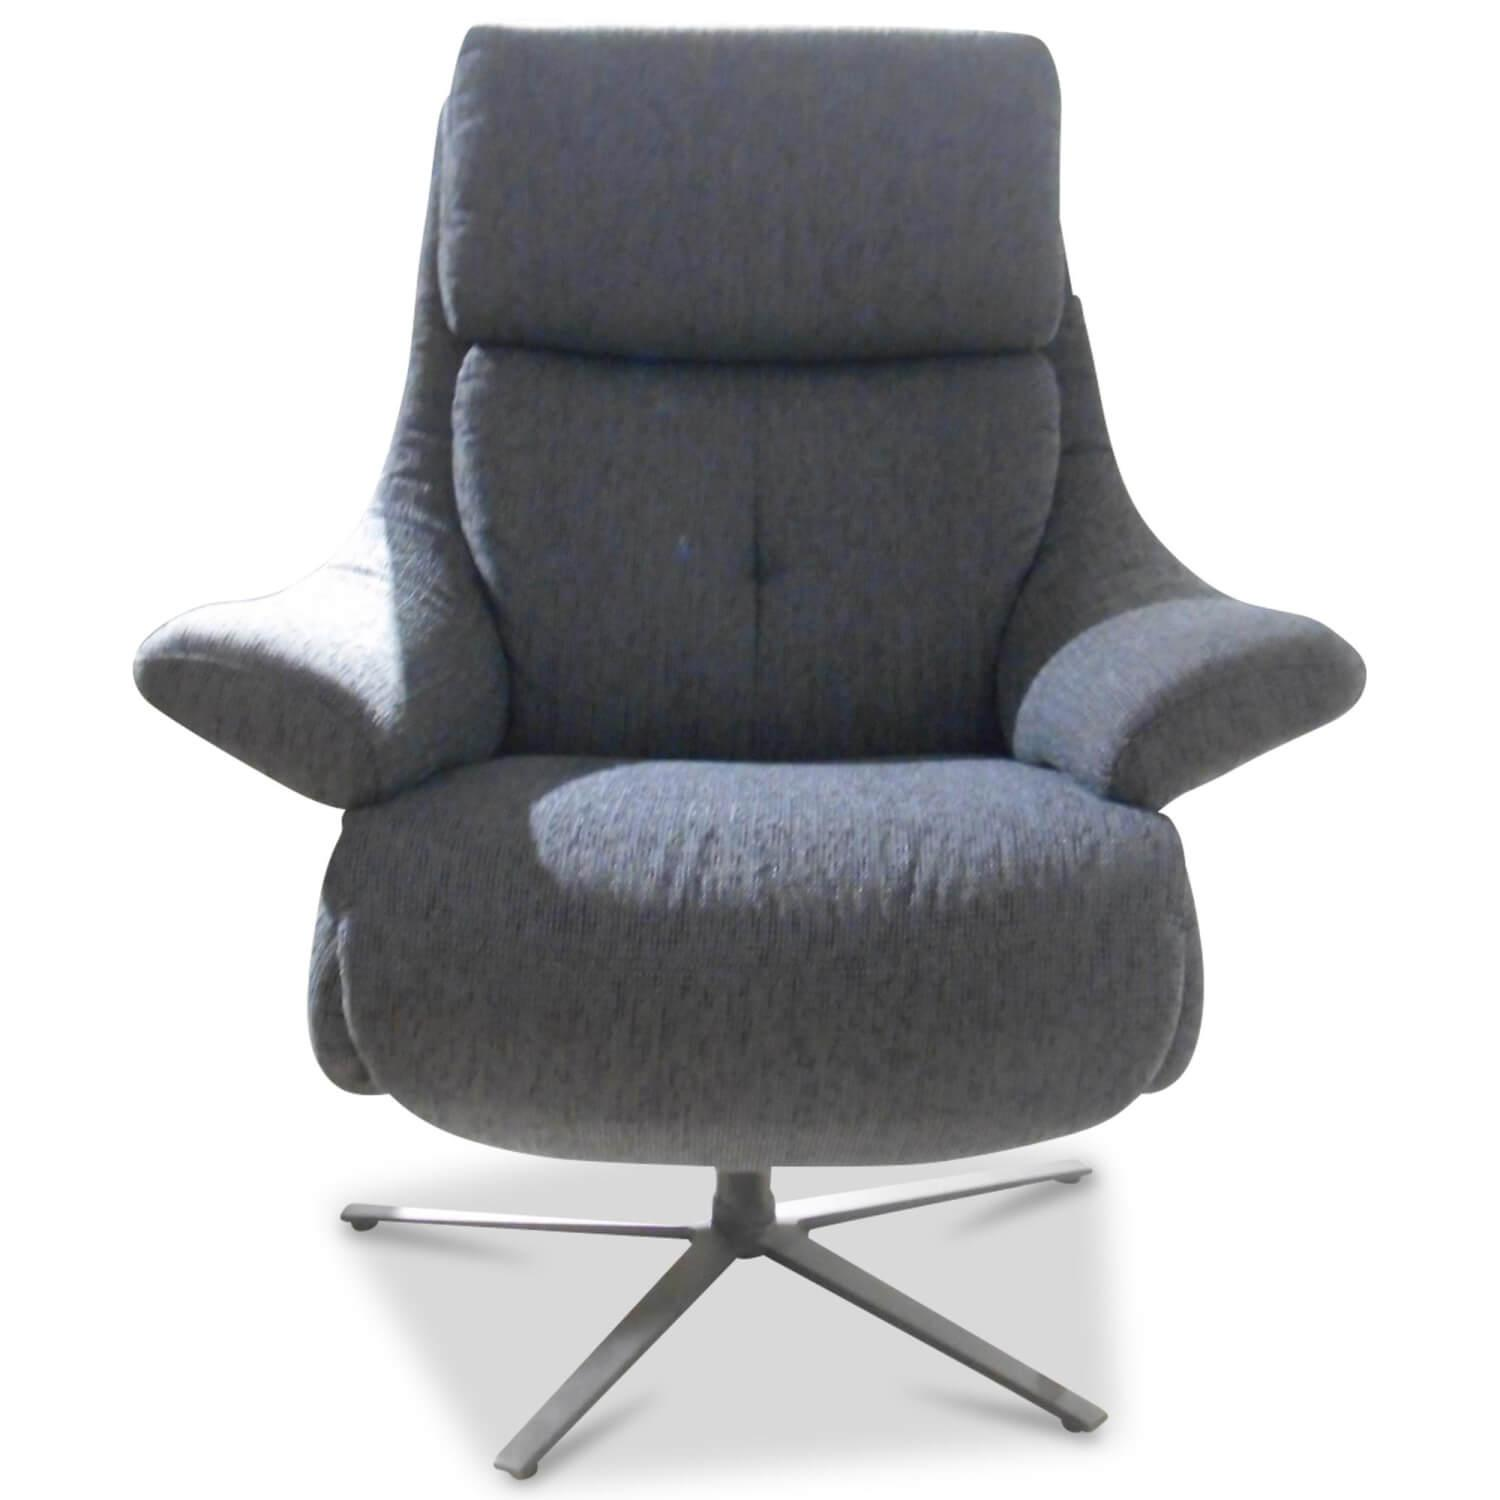 Sessel 7702 36 S14 Stoff Blau mit Relaxfunktion